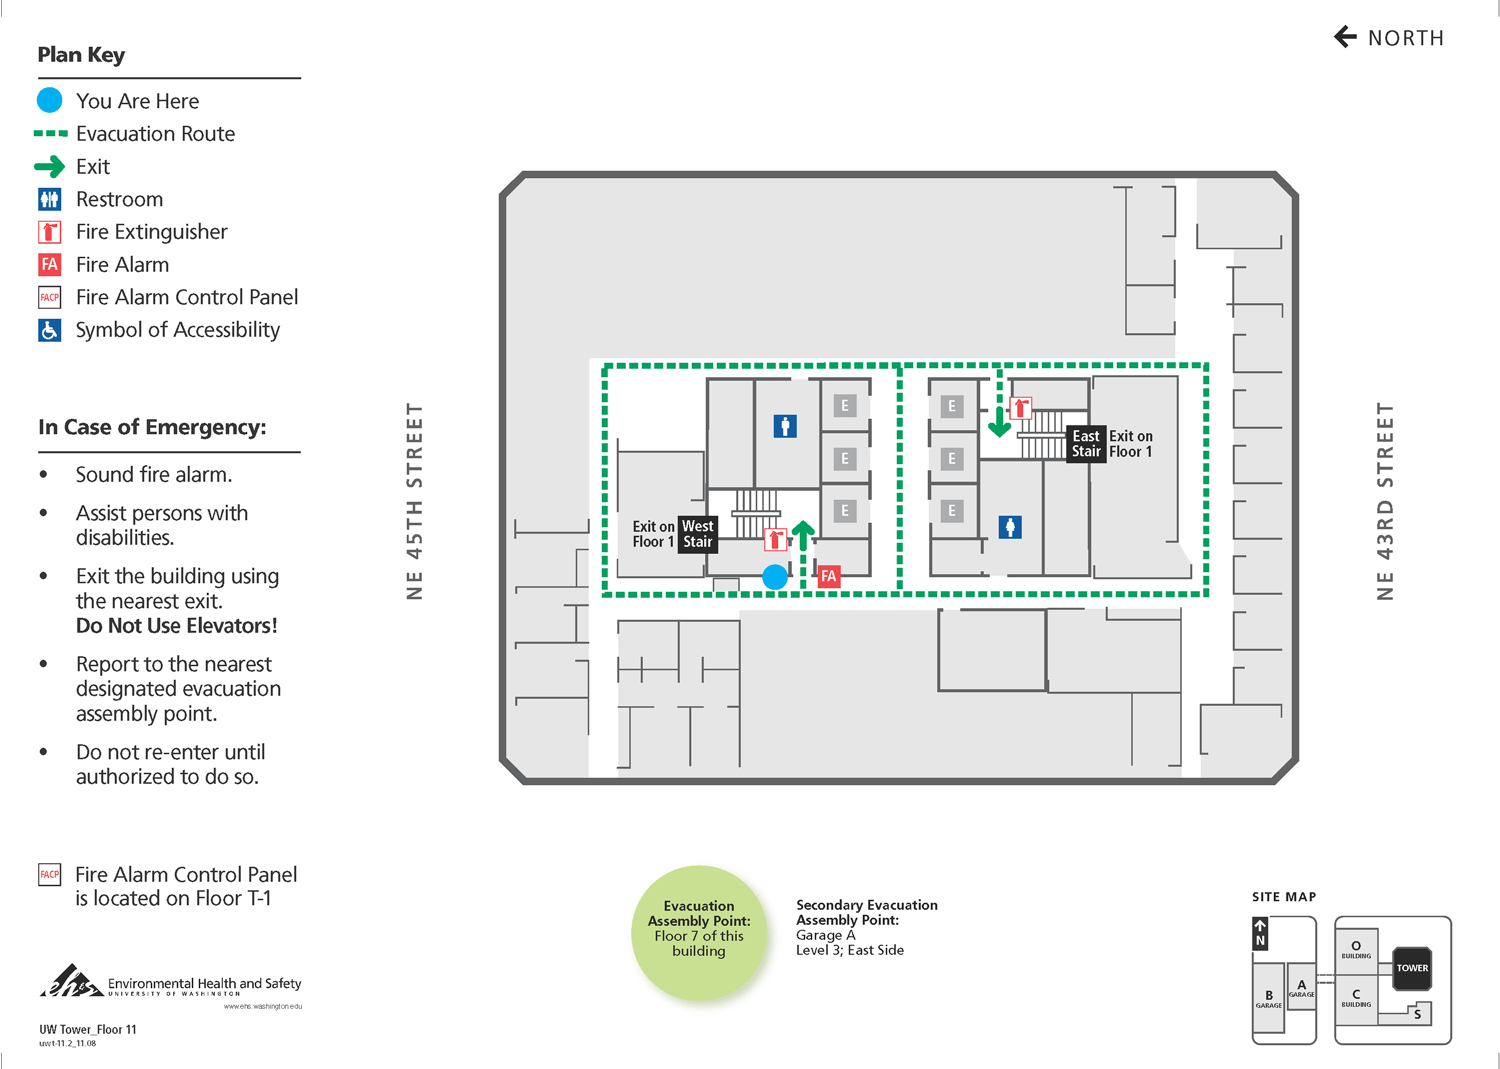 Evacuation Maps Uw Facilities